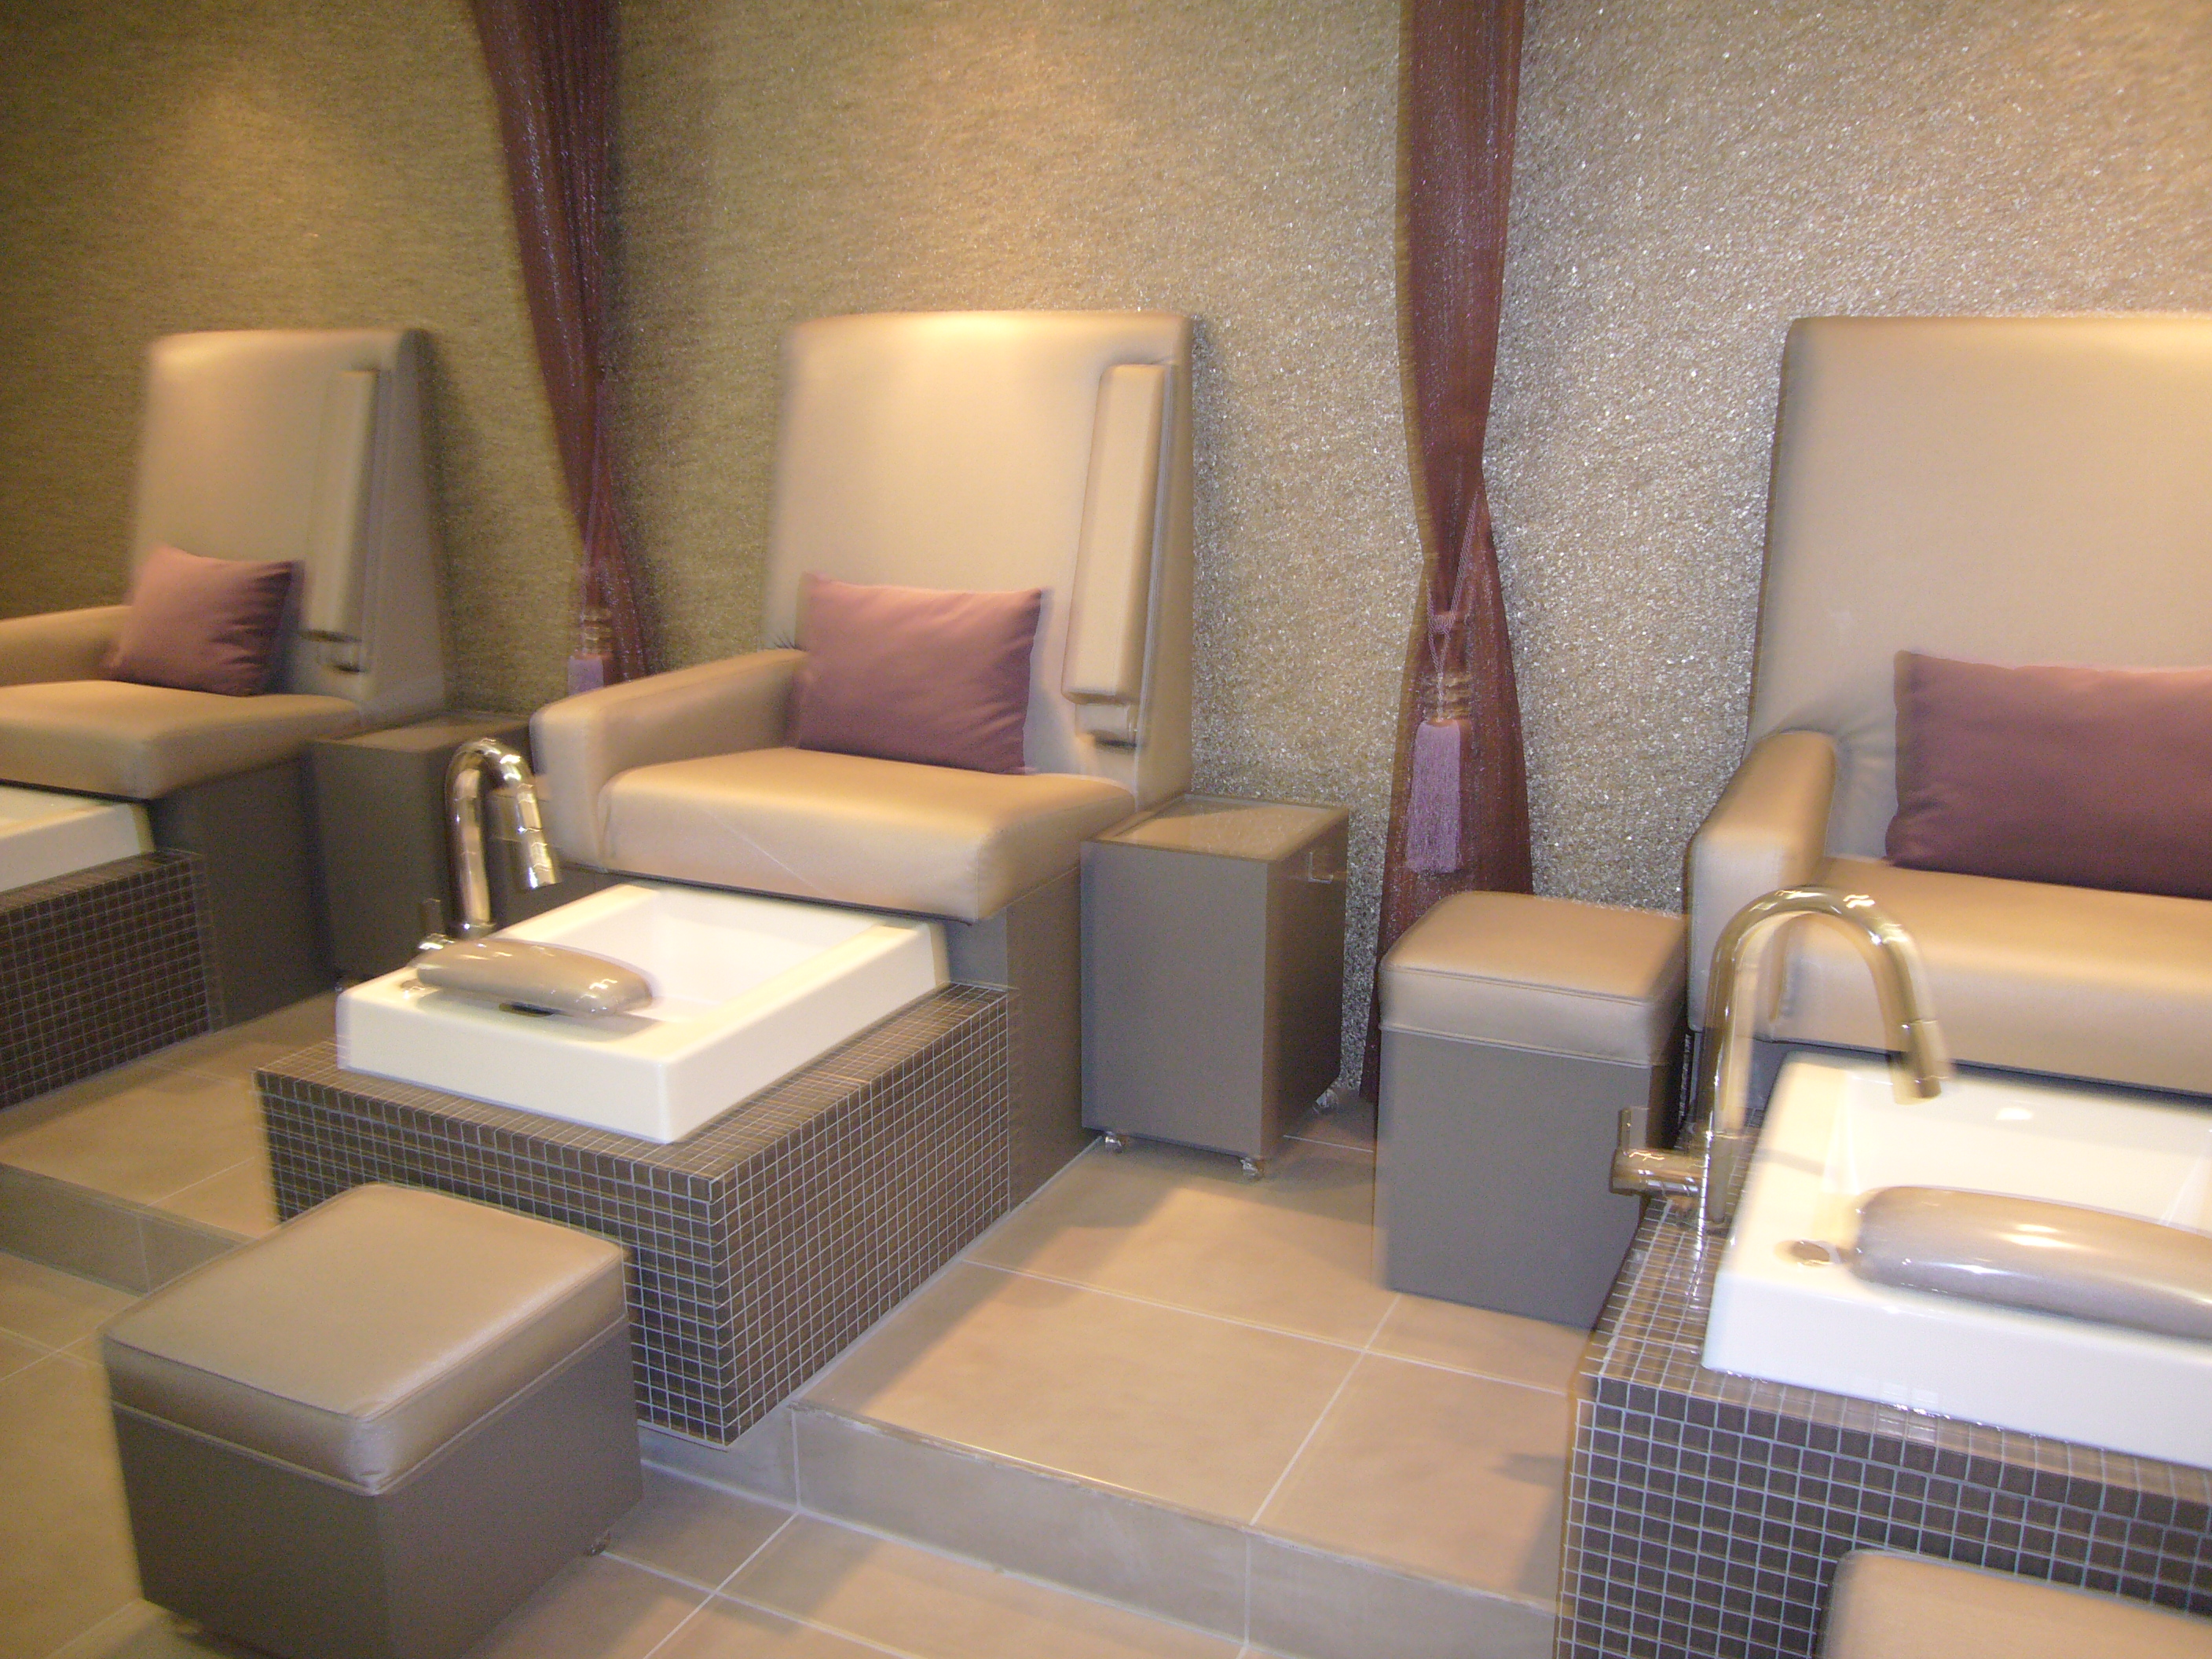 Spa Pedicure Chairs Spa Style S Blog